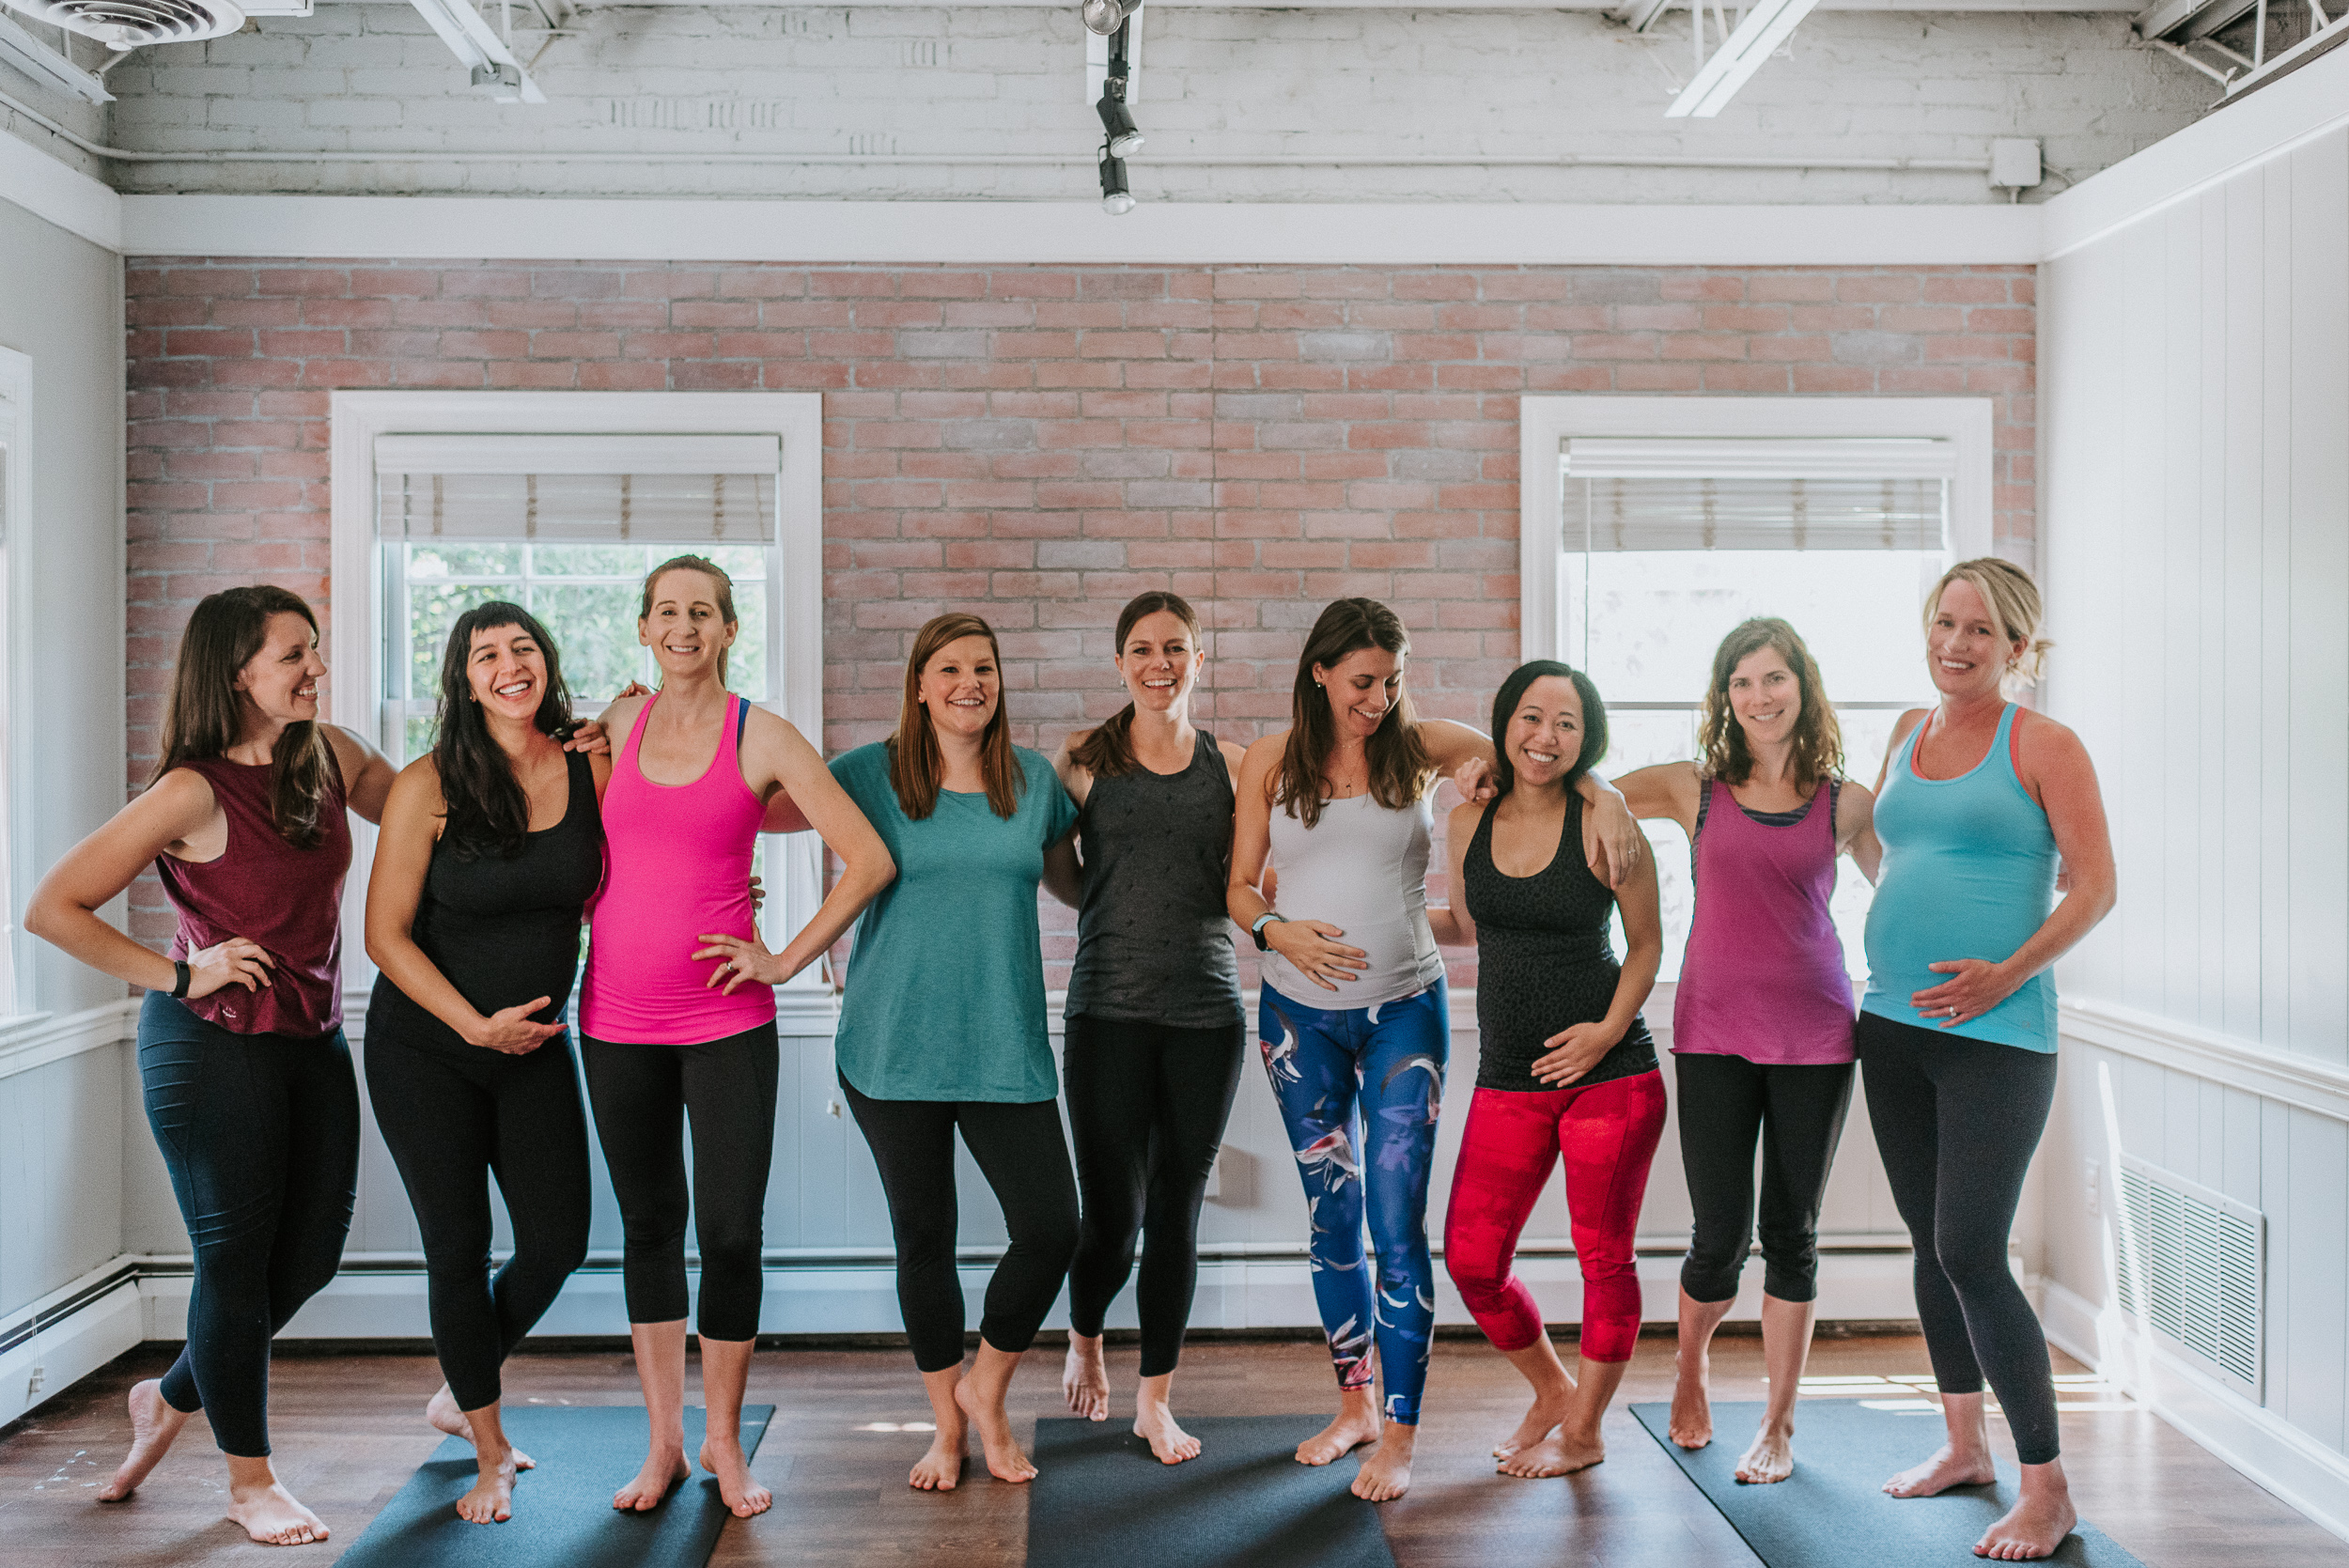 Welcome to the Motherhood - A yoga, education, and self-care community, designed just for moms and moms-to-be